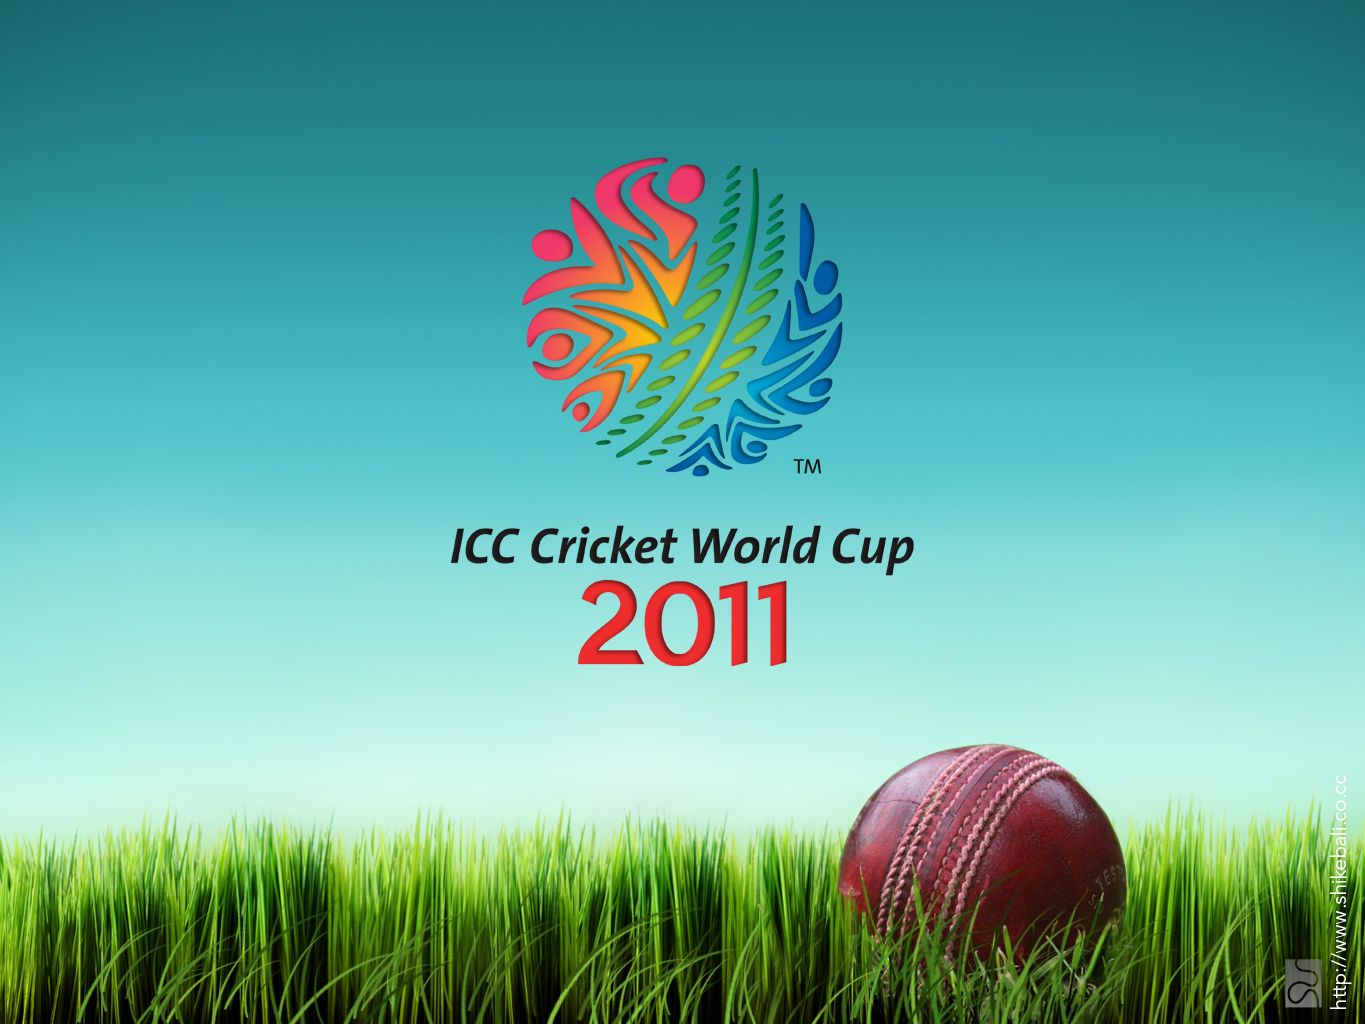 Cricket Wallpaper Hd Wallpapers Backgrounds Of Your Choice Cricket World Cup Cricket Wallpapers World Cup